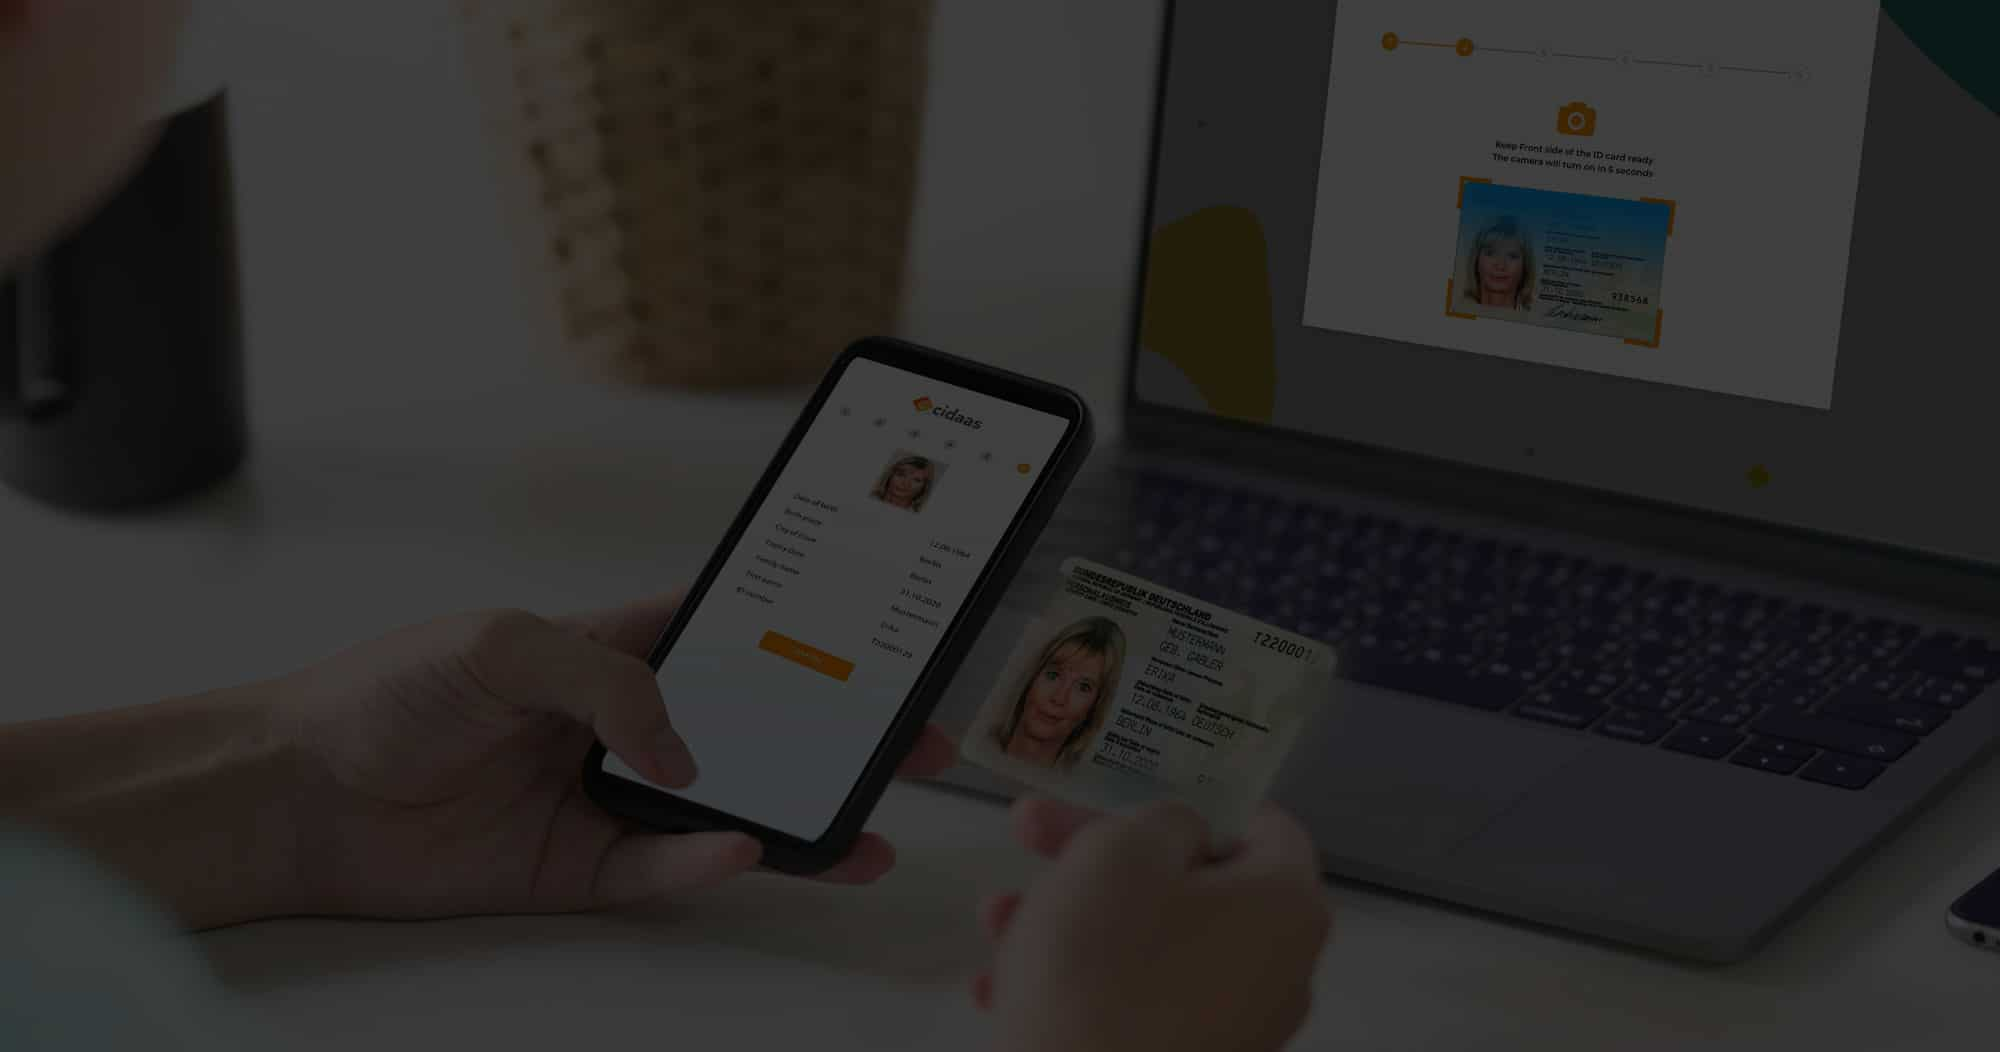 digital identity verification is very important in the digital world. with cidaas you achieve seamless customer experience